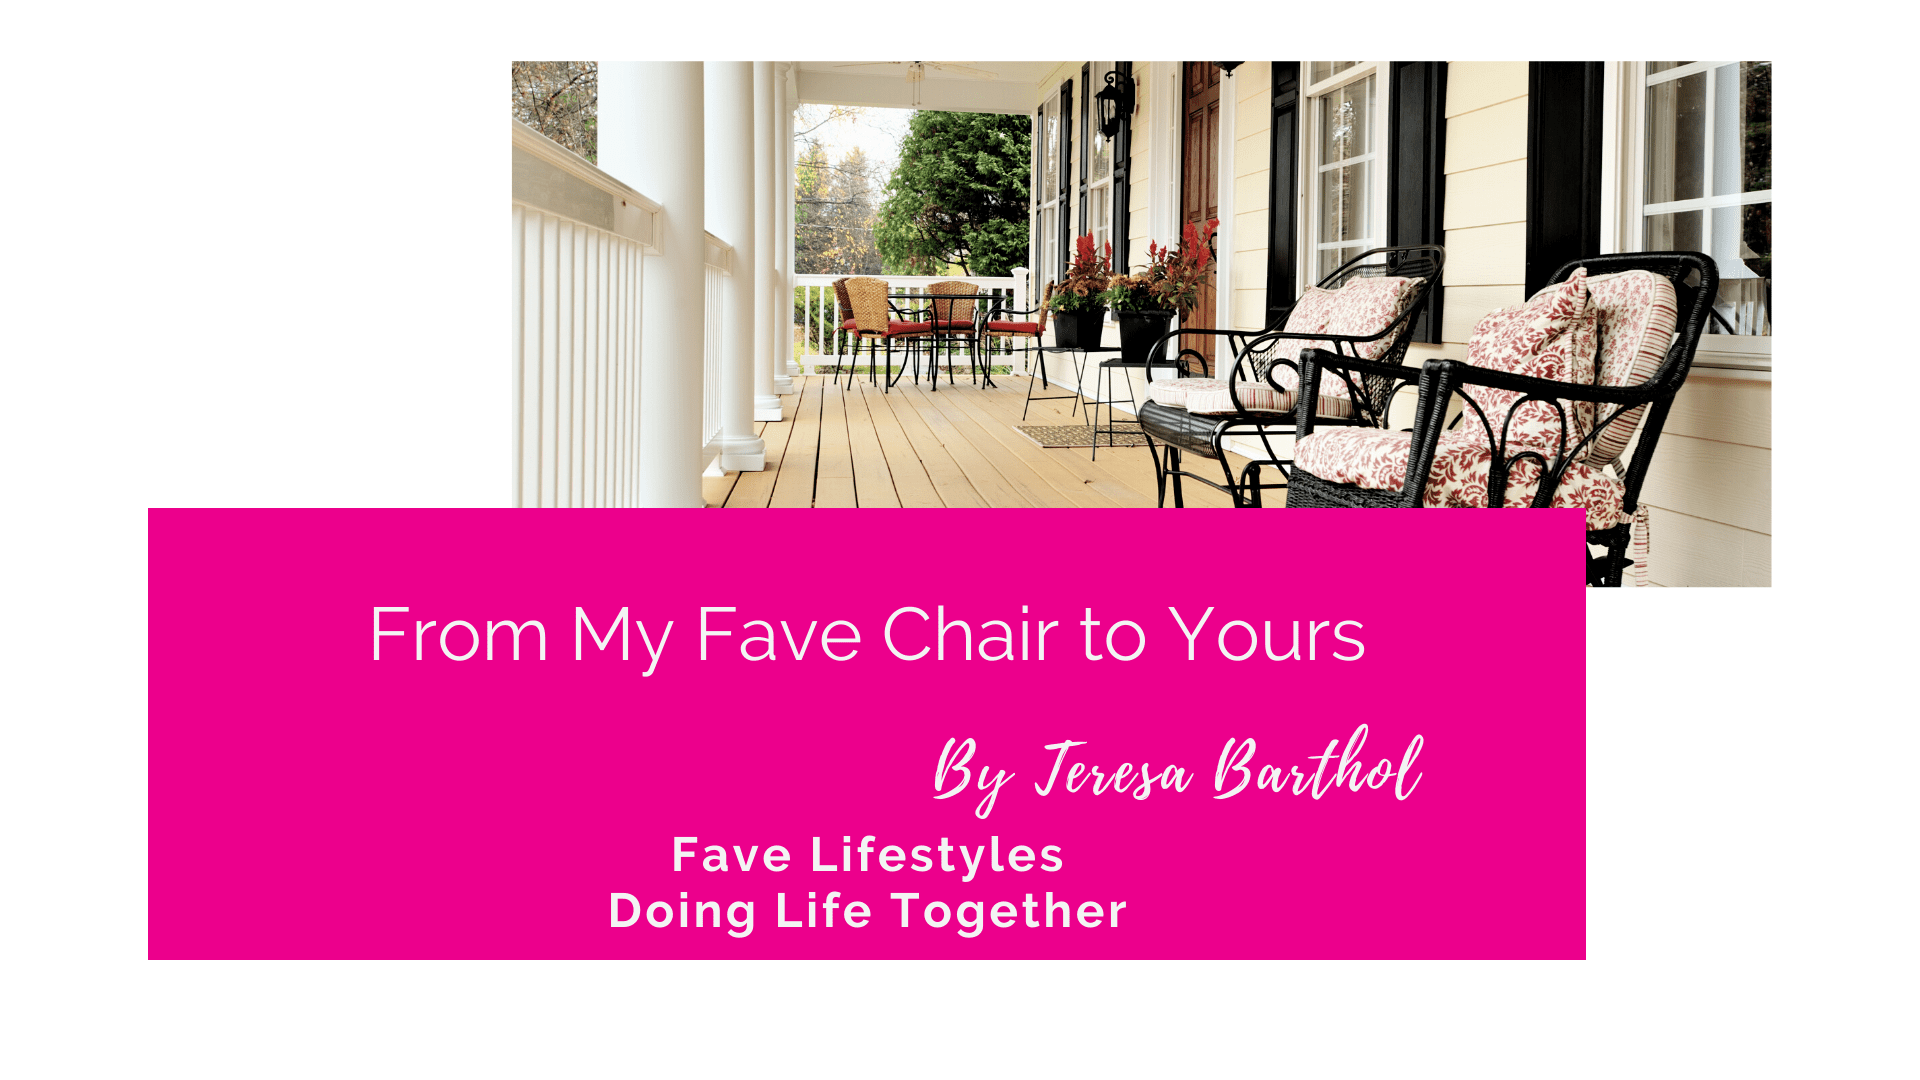 From My Fave Chair to Yours!